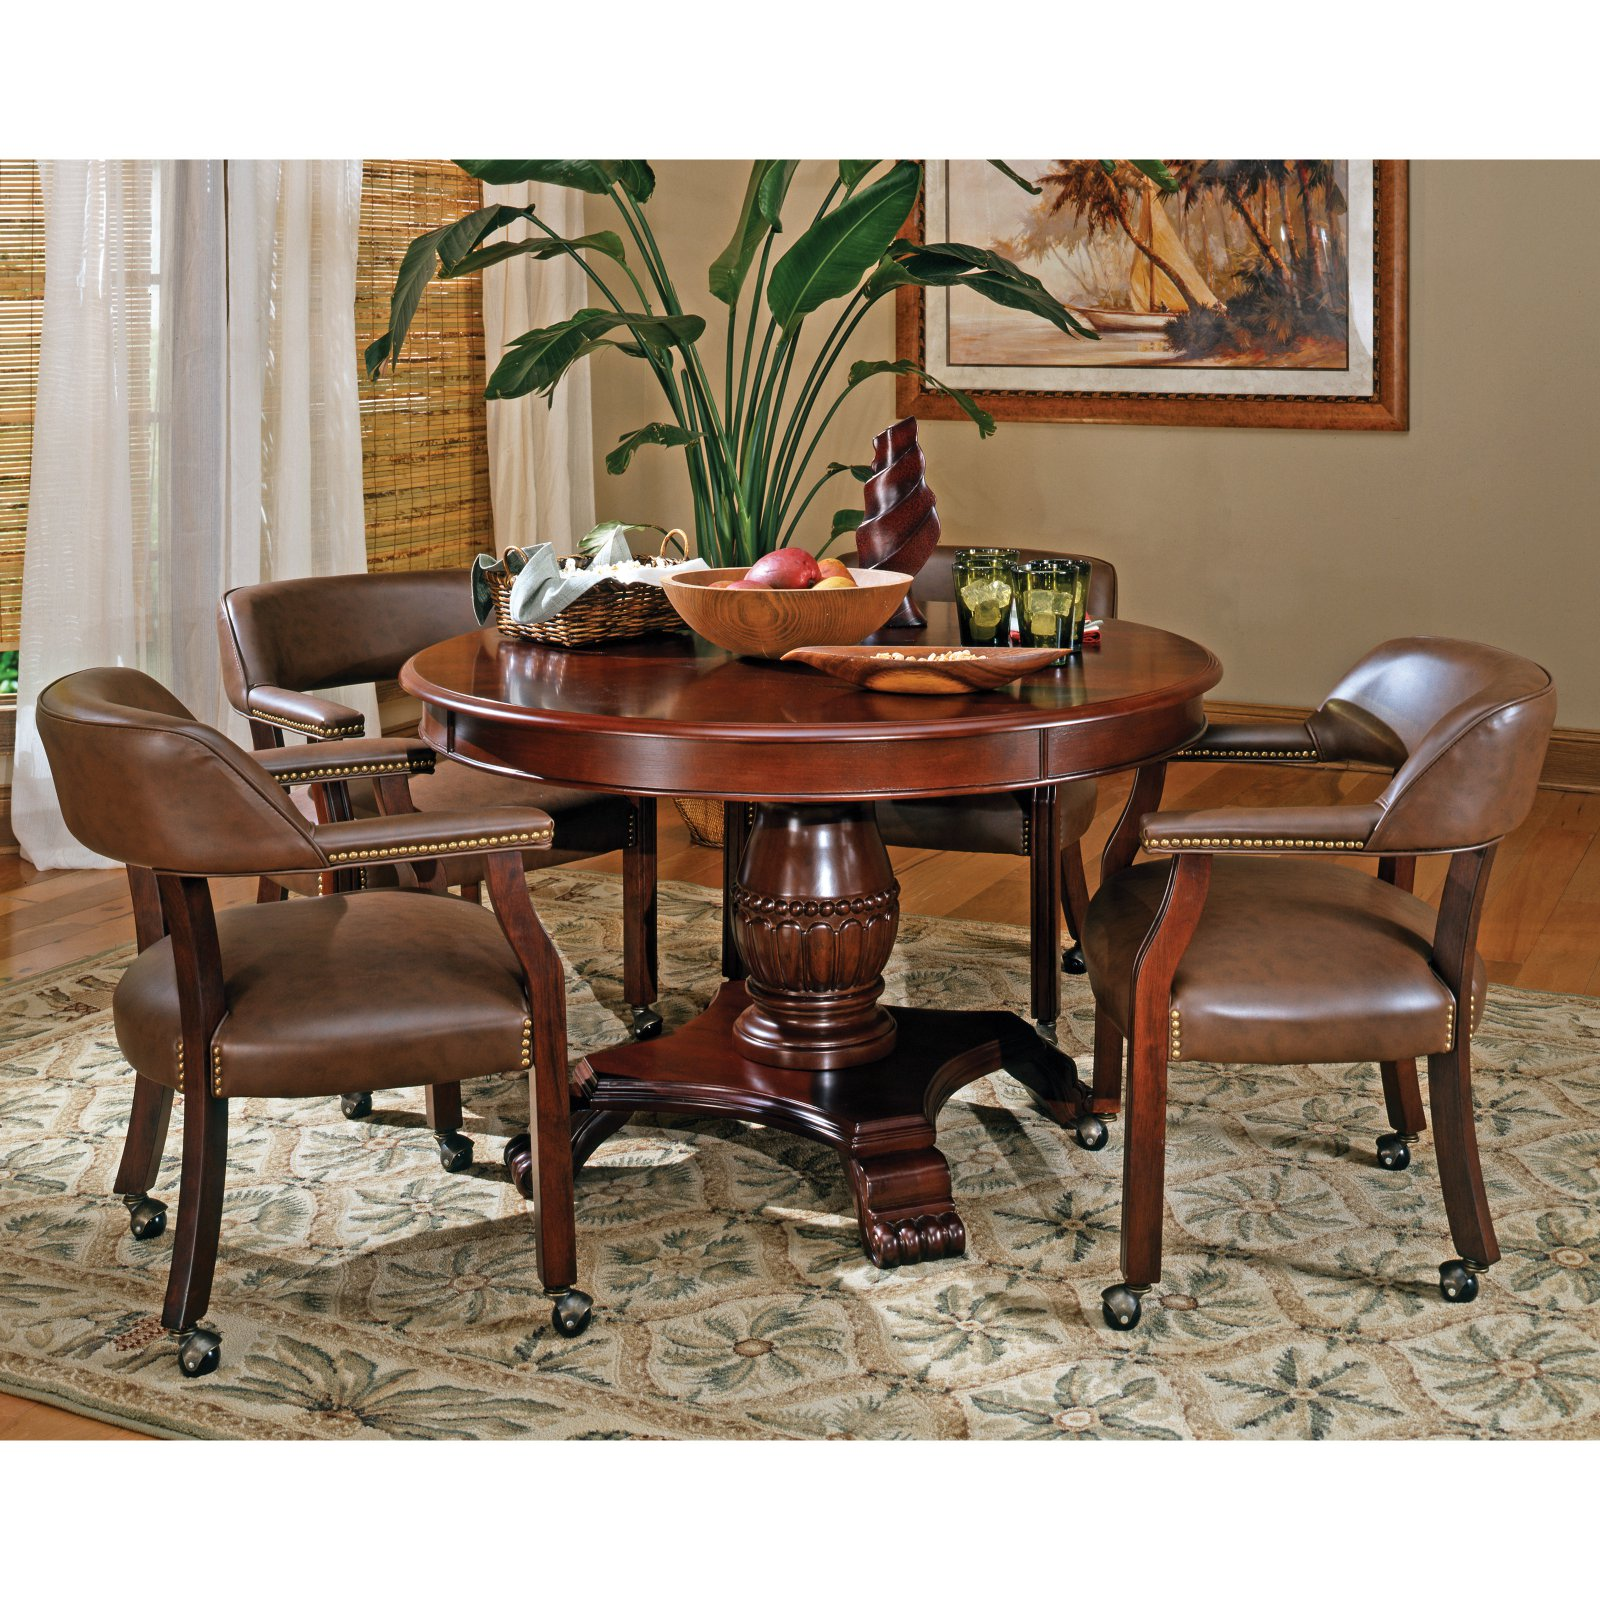 Steve Silver Tournament Dining Game Table Cherry by Steve Silver Co